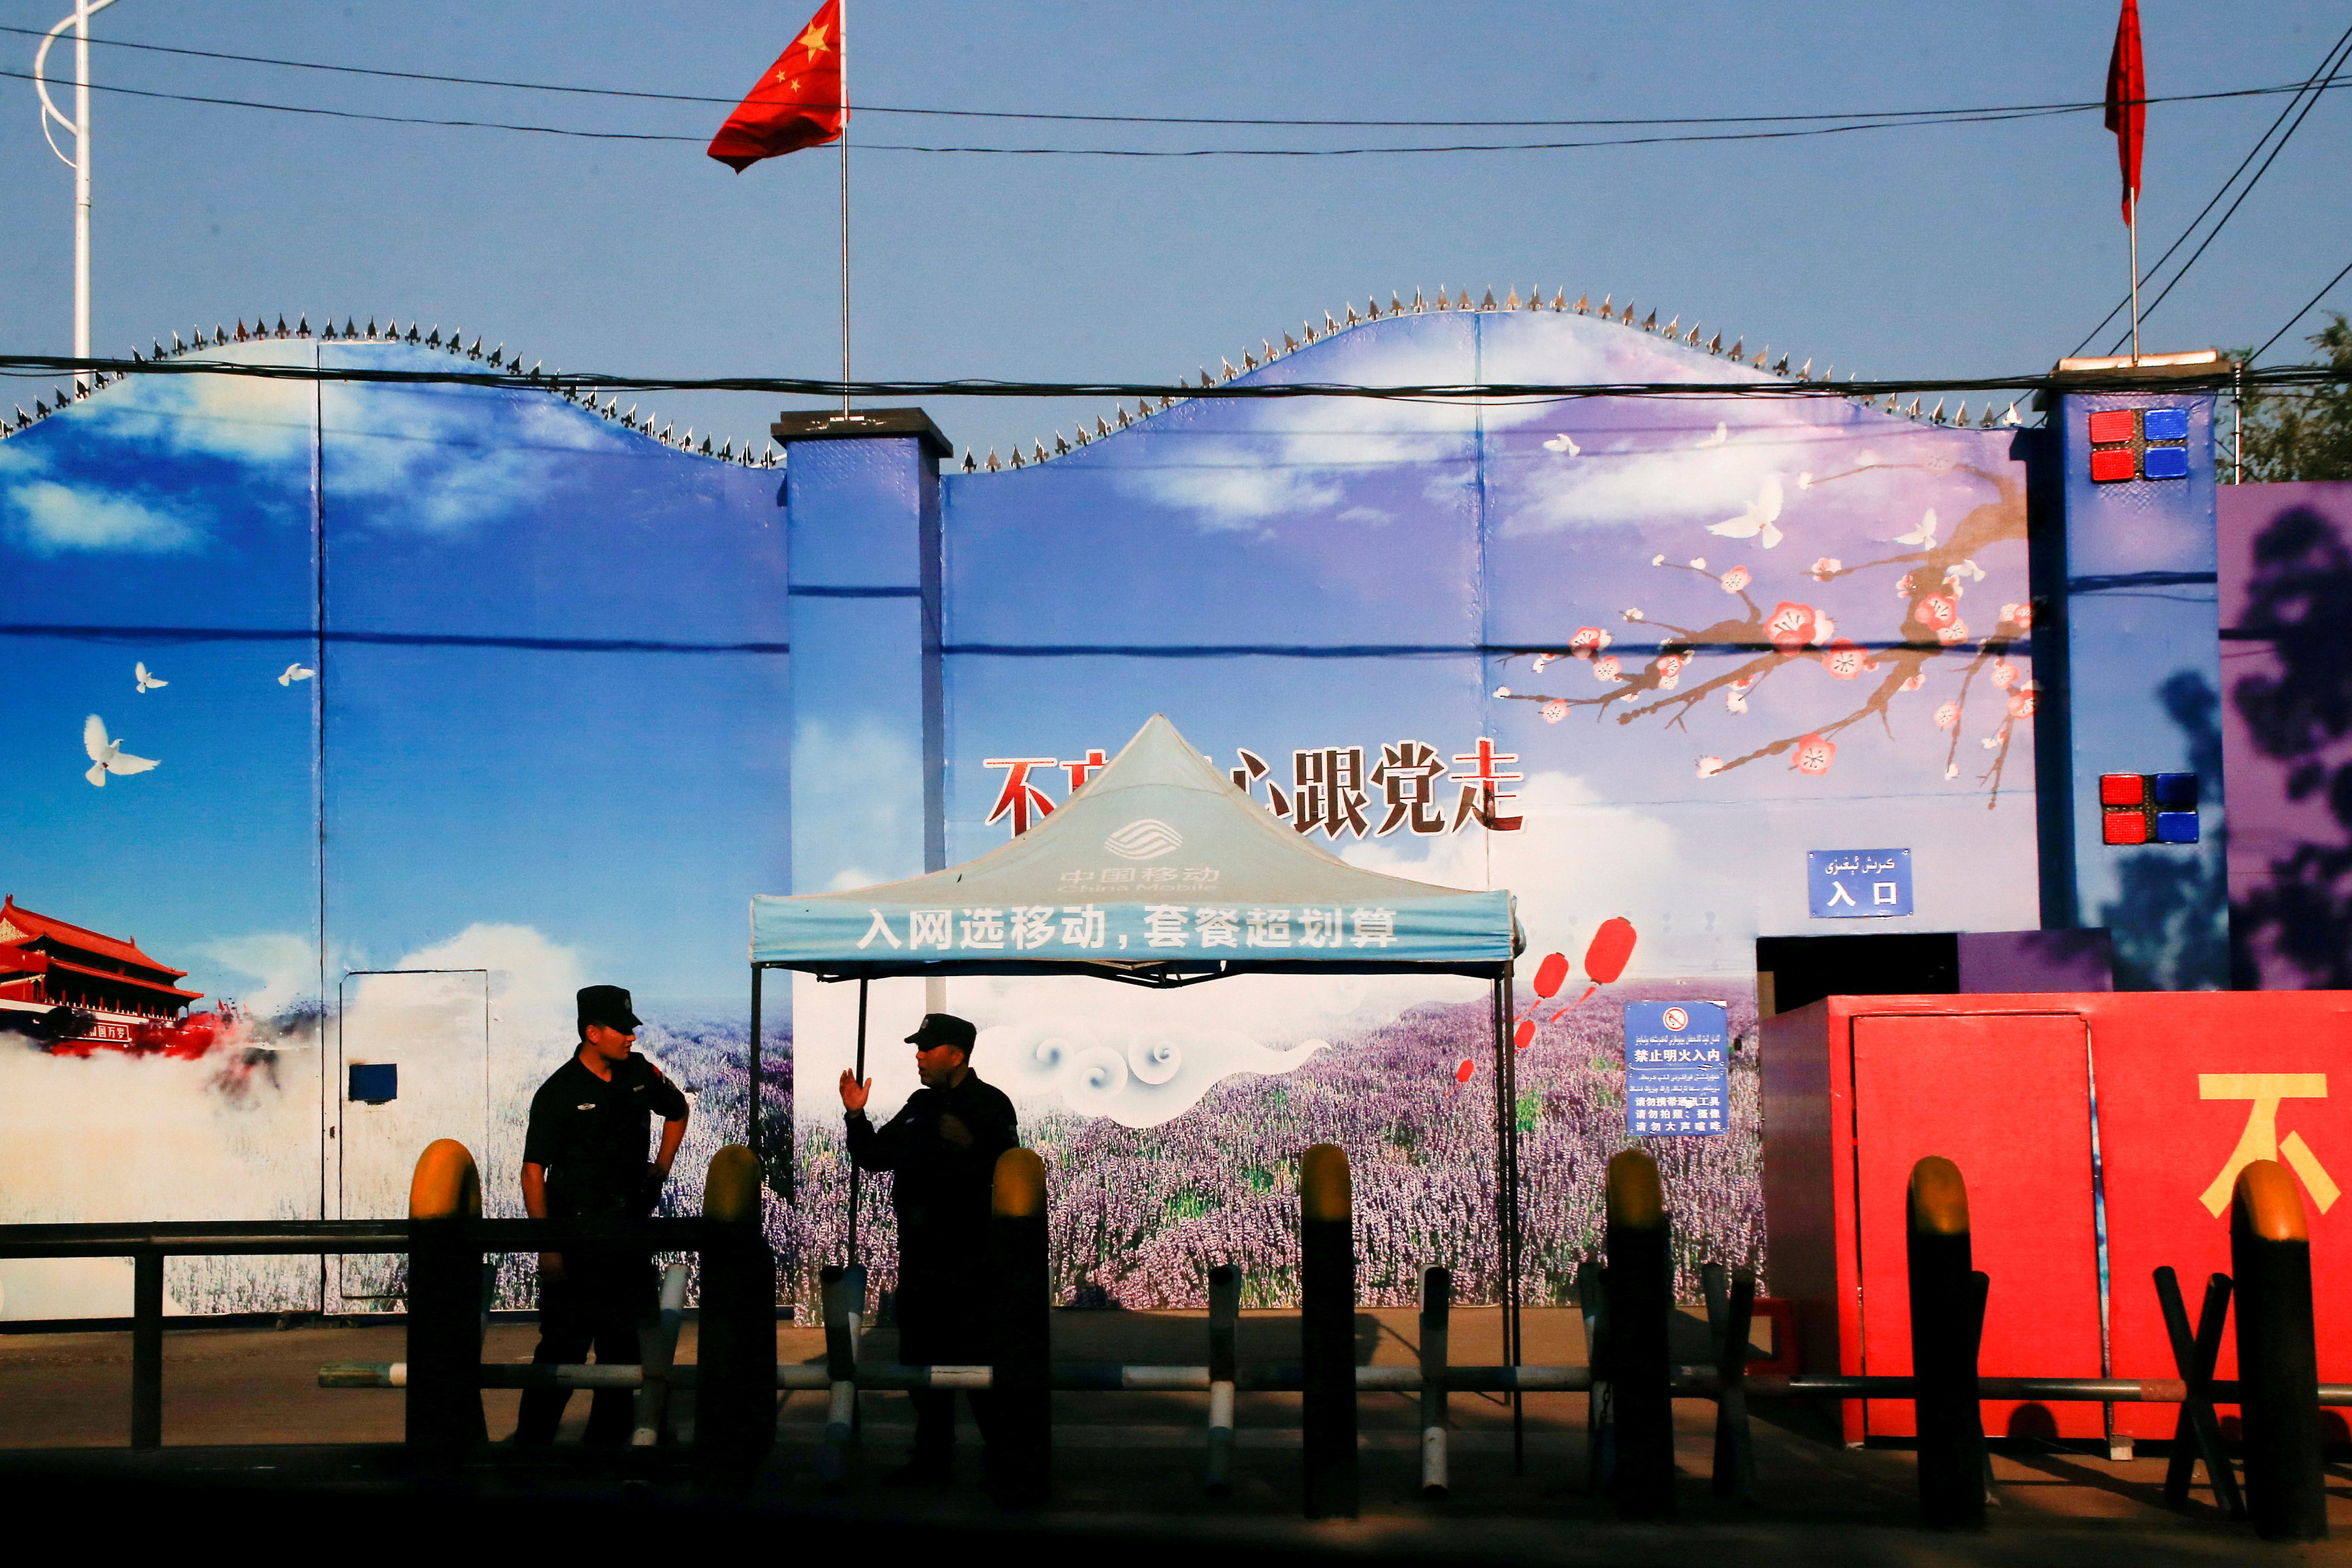 Security guards stand at the gates of what is officially known as a vocational skills education center in Huocheng County in Xinjiang Uighur Autonomous Region, China September 3, 2018.REUTERS/Thomas Peter/File Photo